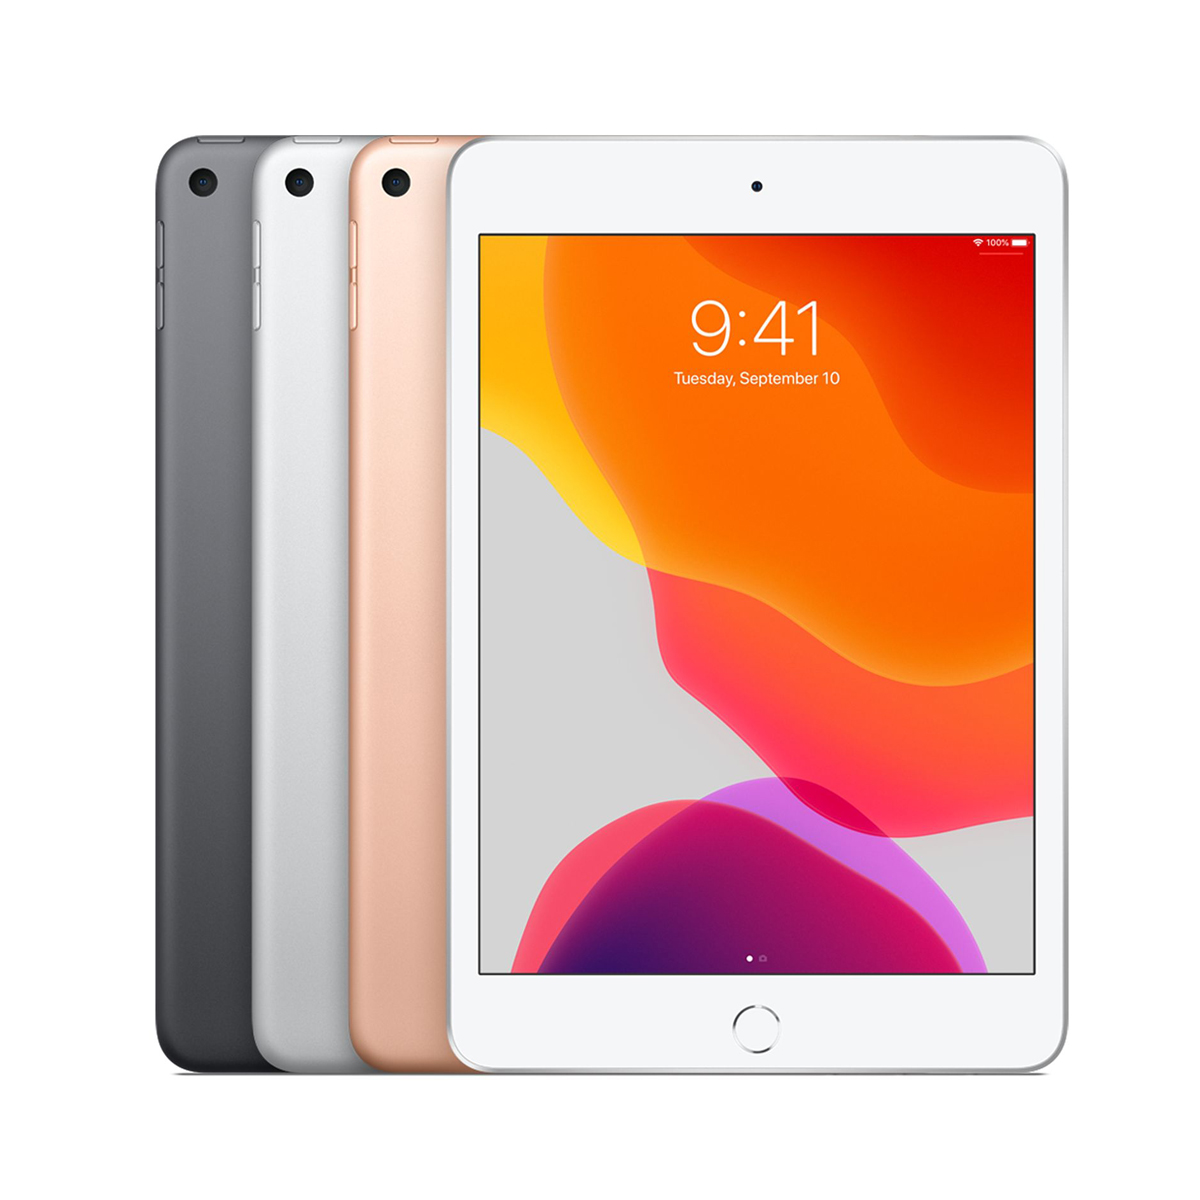 Apple 平板 iPad mini 2019 Wi-Fi (64G)